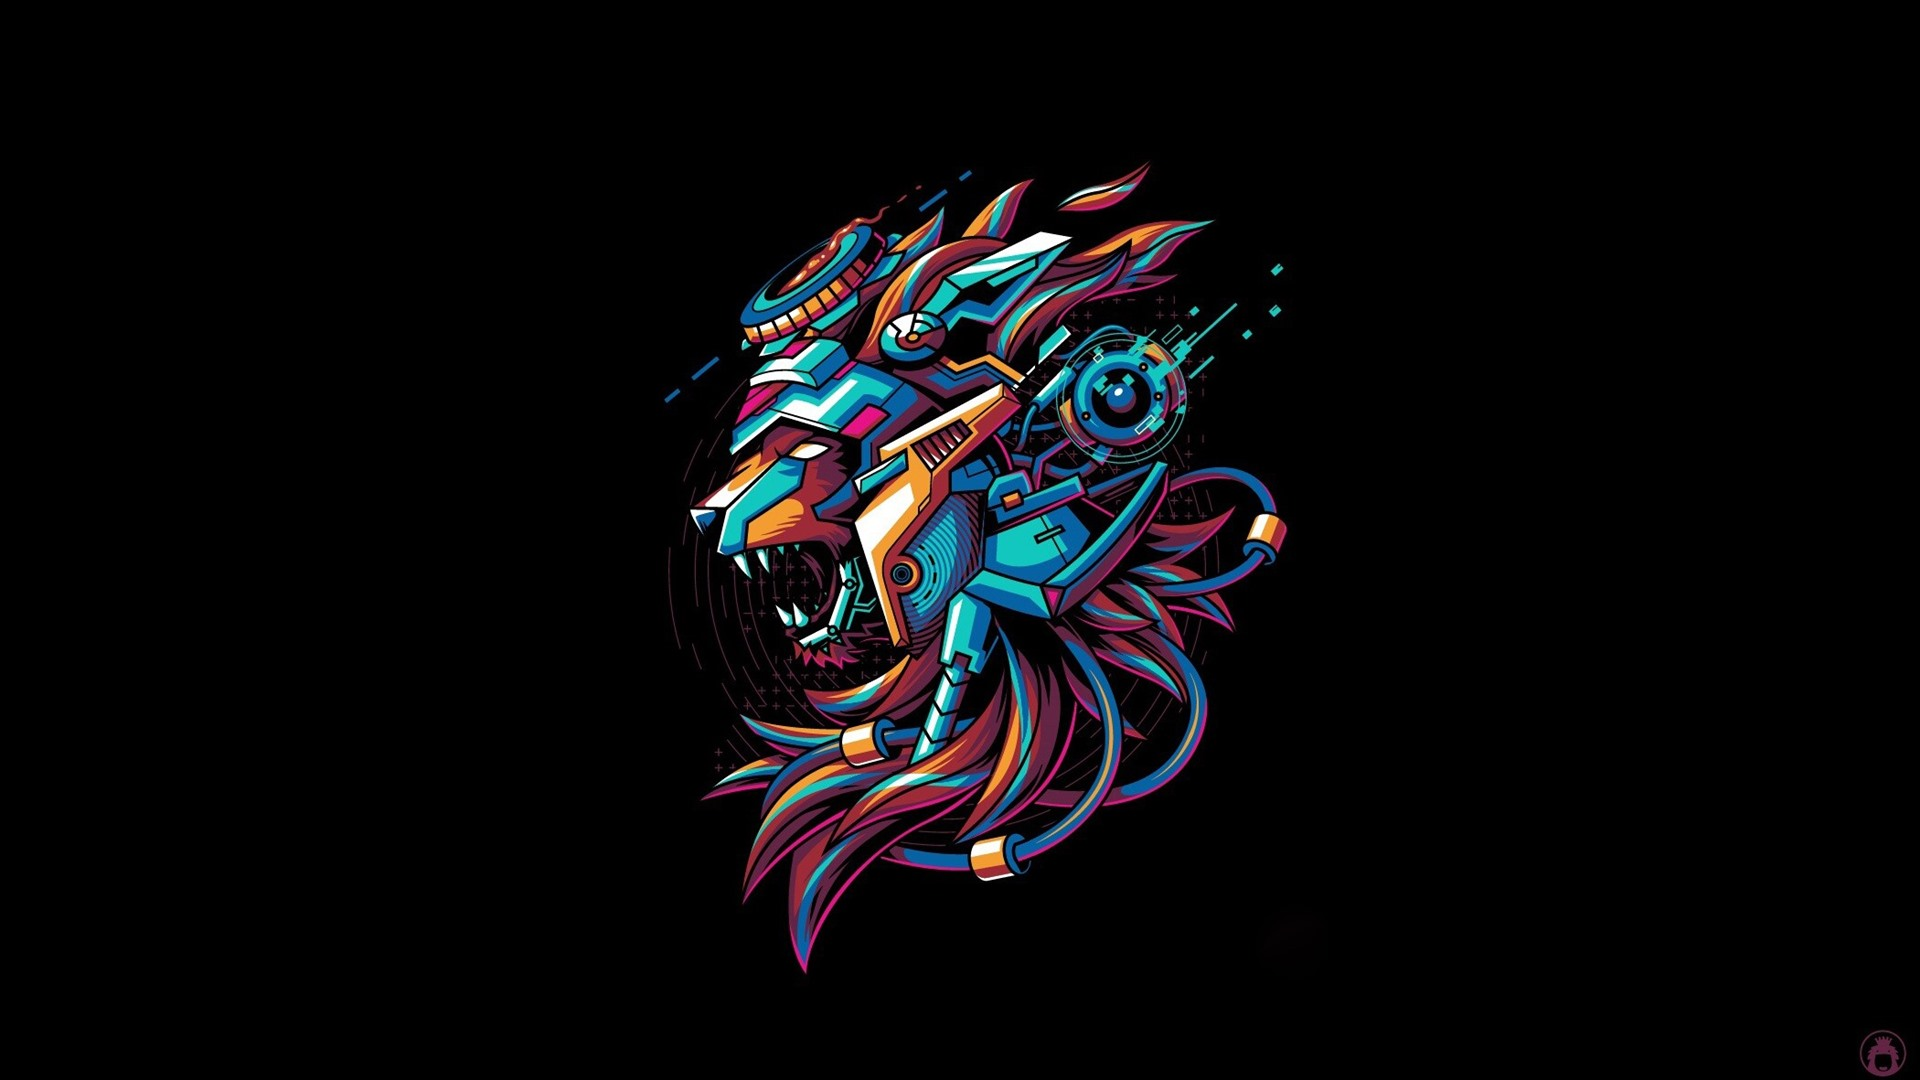 Wallpaper Lion, mecha, black background